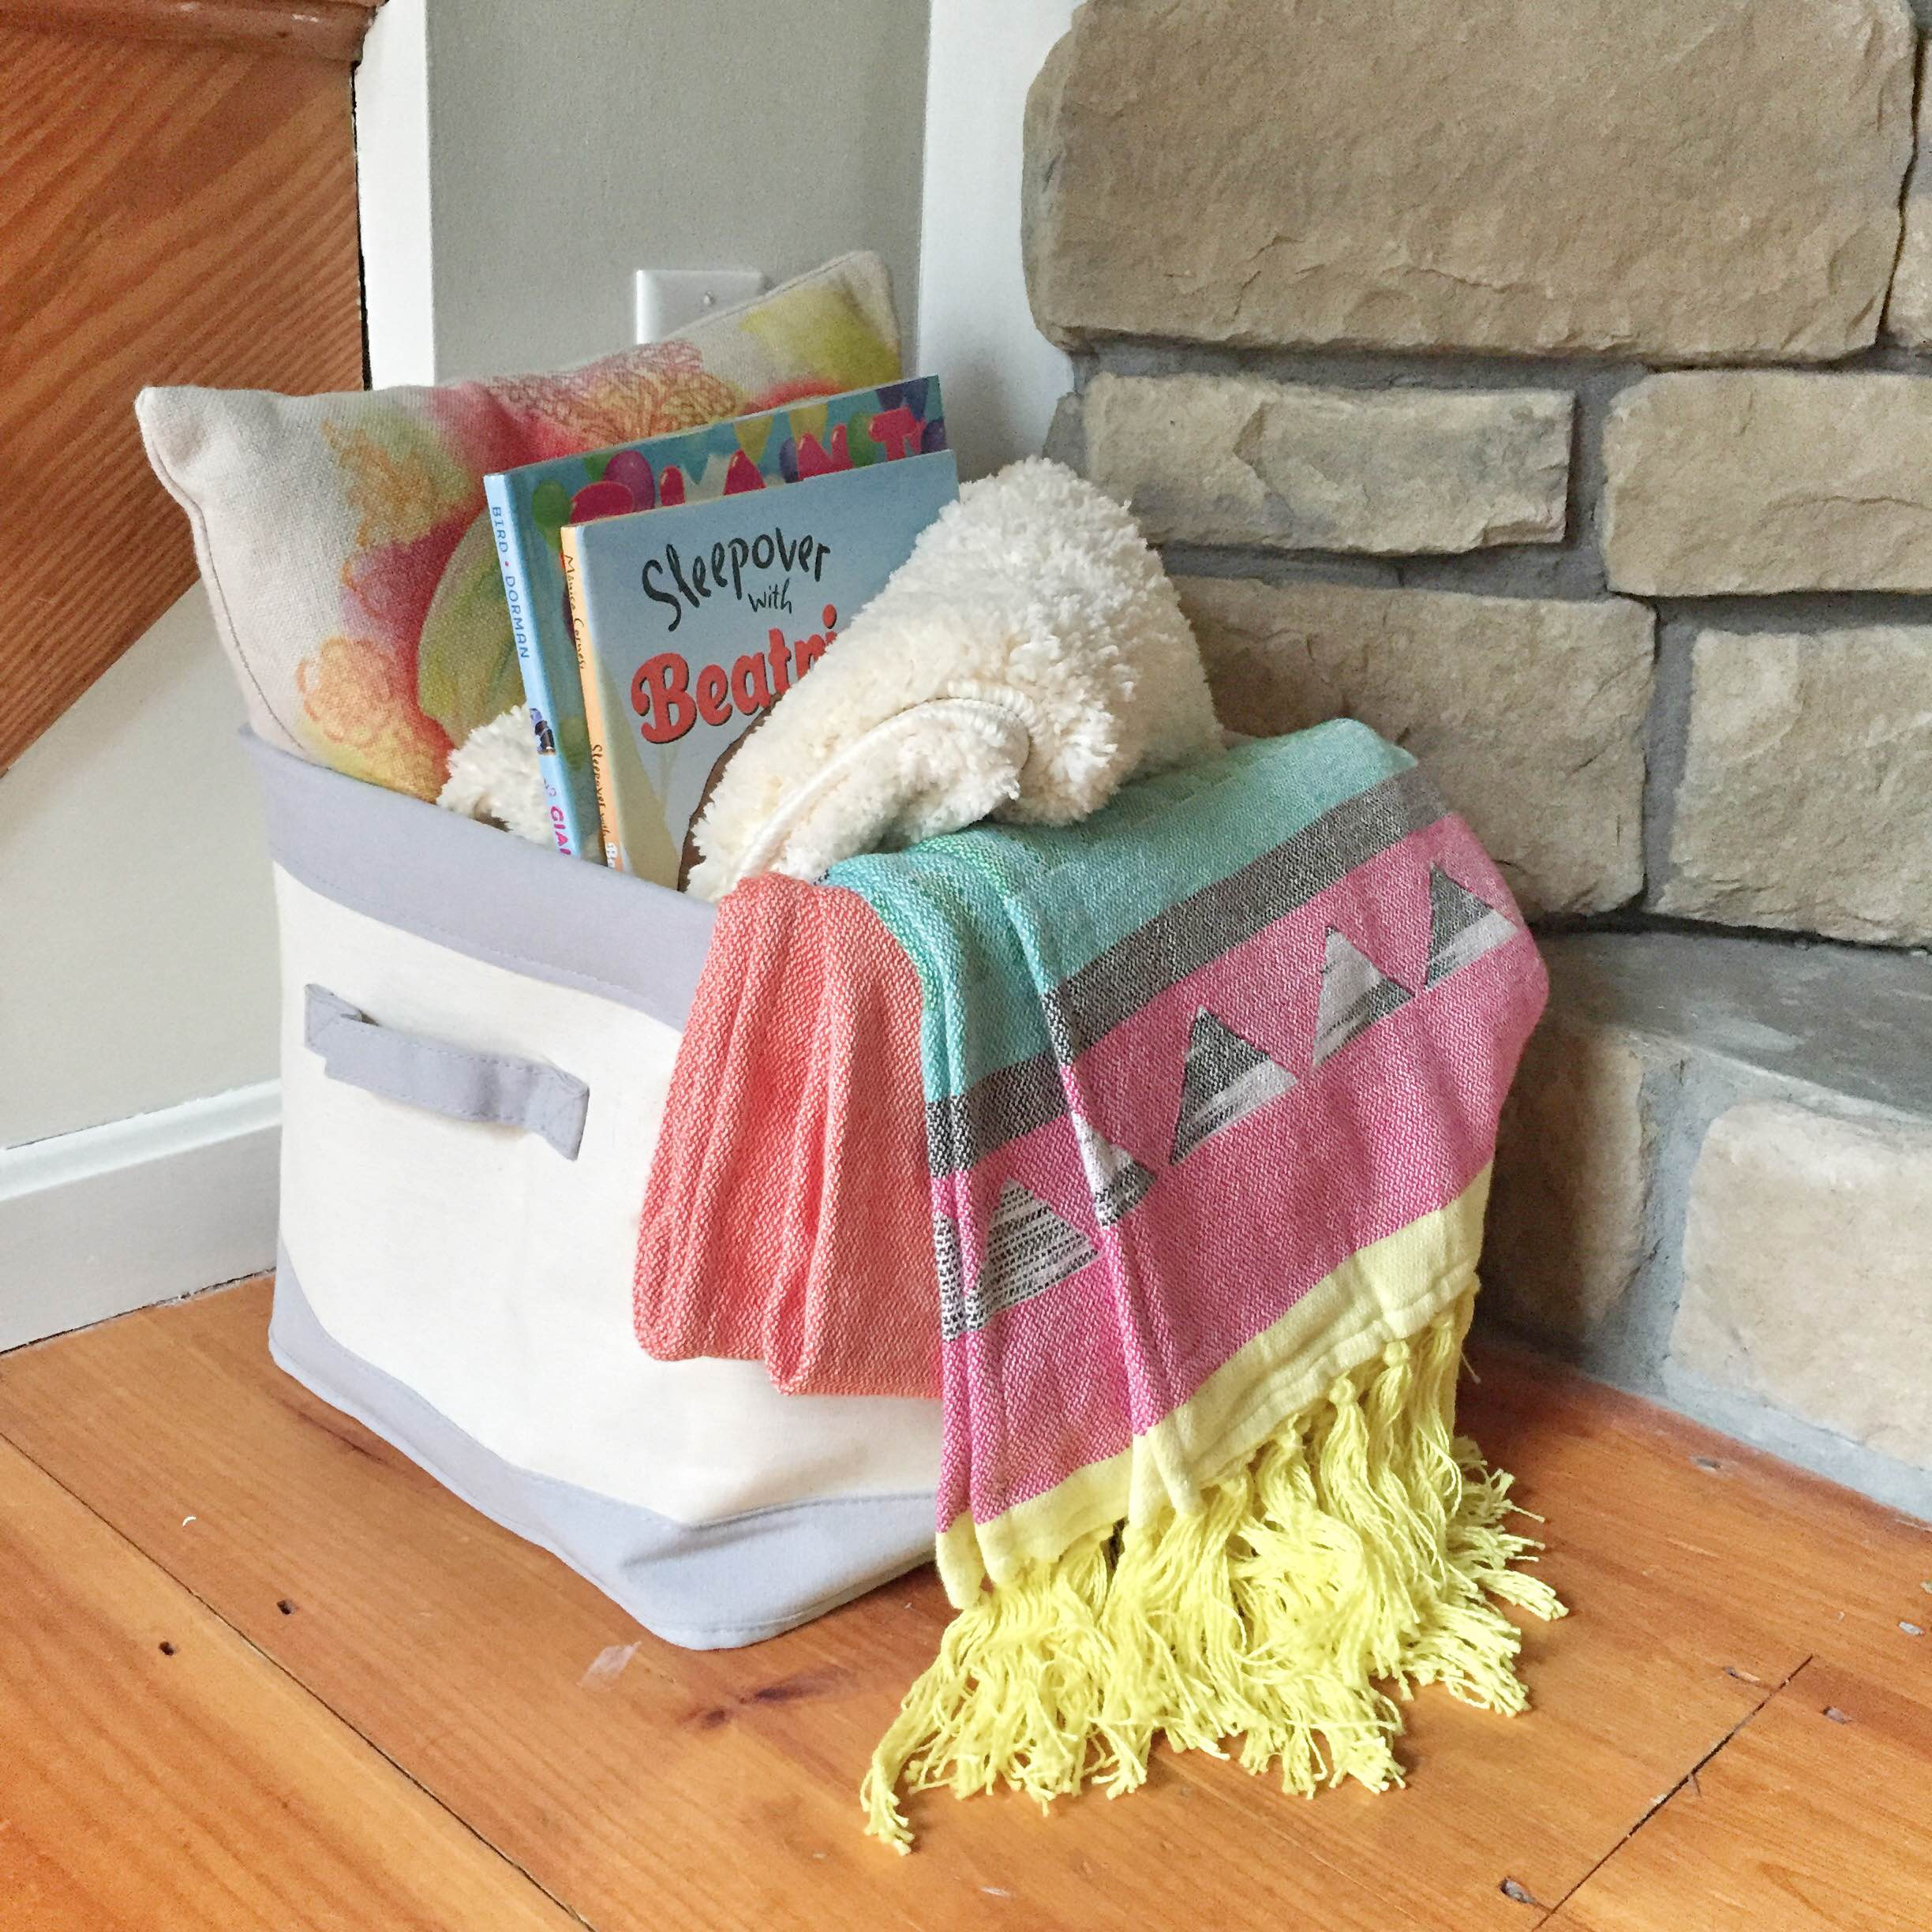 How to create a portable book nook | Kids book corner | How to make a book nook | GinaKirk.com @ginaekirk